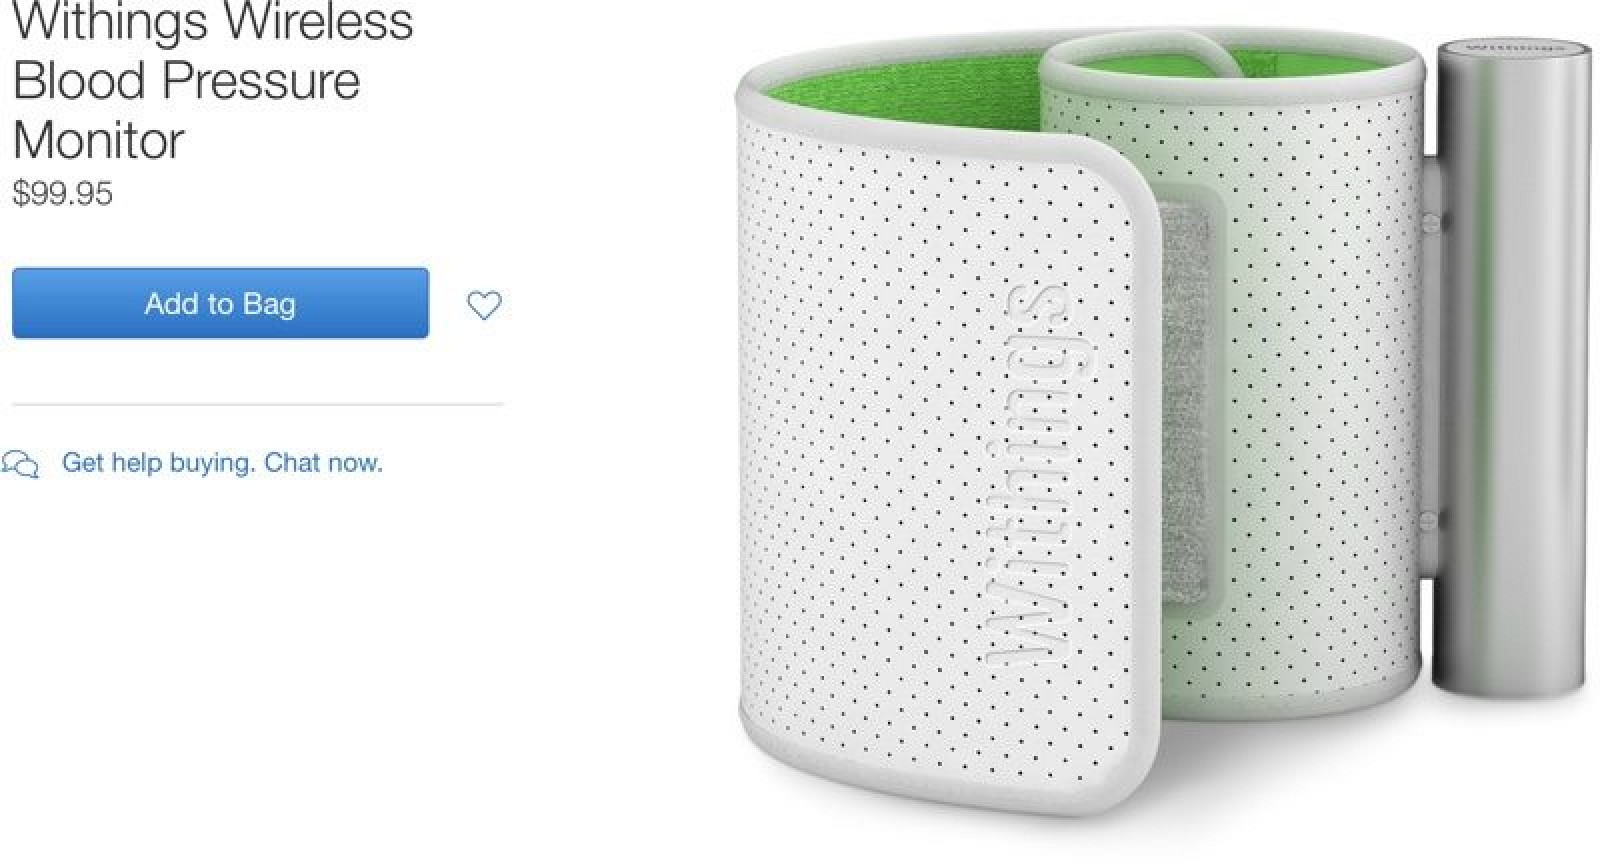 Apple Pulls All Withings Accessories From Apple Online Store Following Nokia Lawsuit